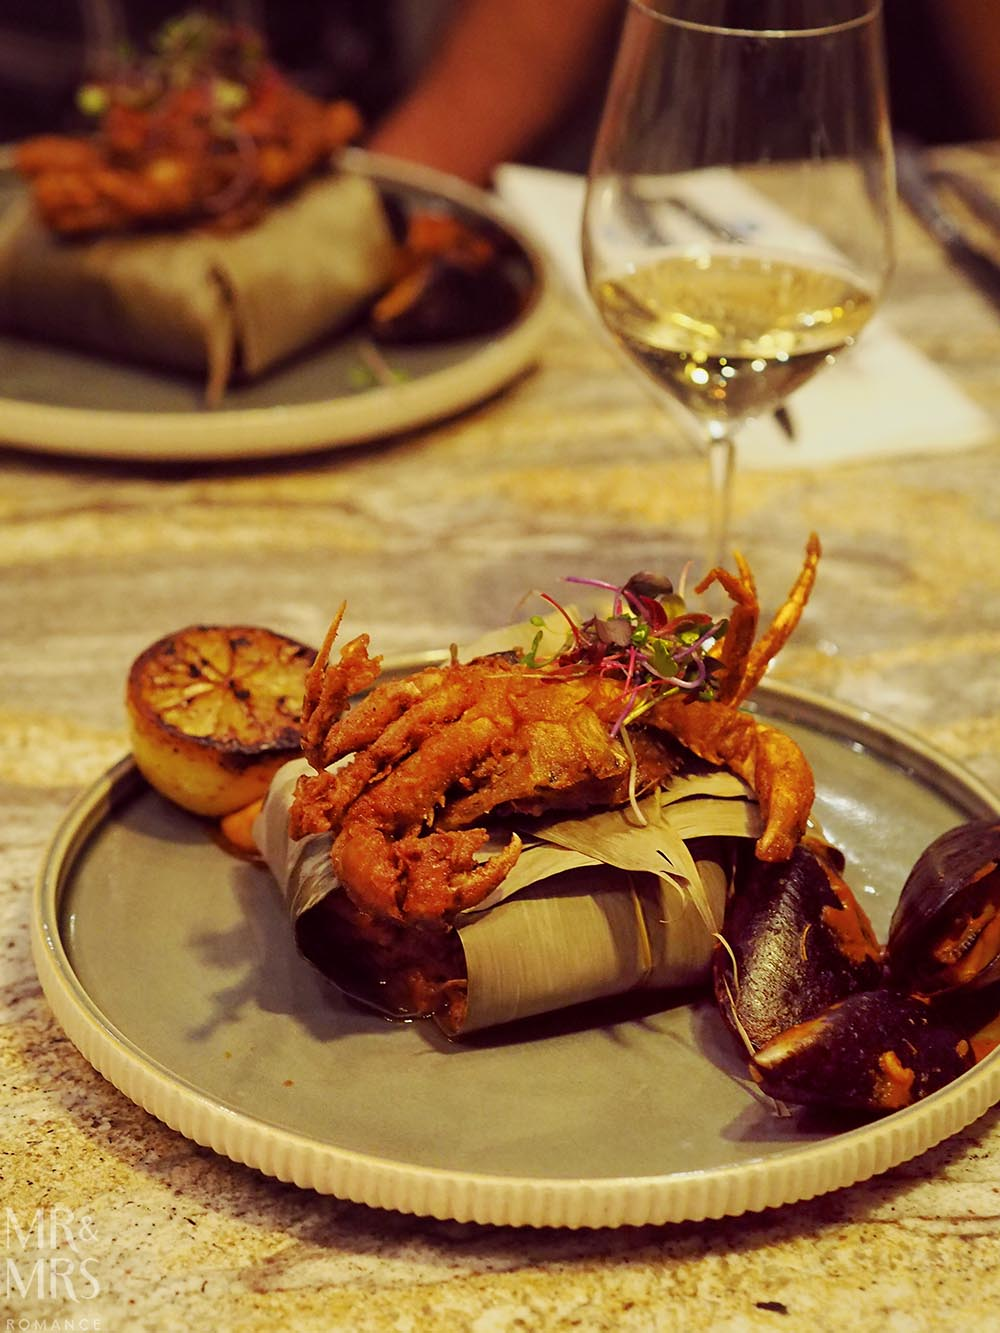 Where to eat in Johannesburg South Africa - soft-shell crab at Epicure by Chef Coco